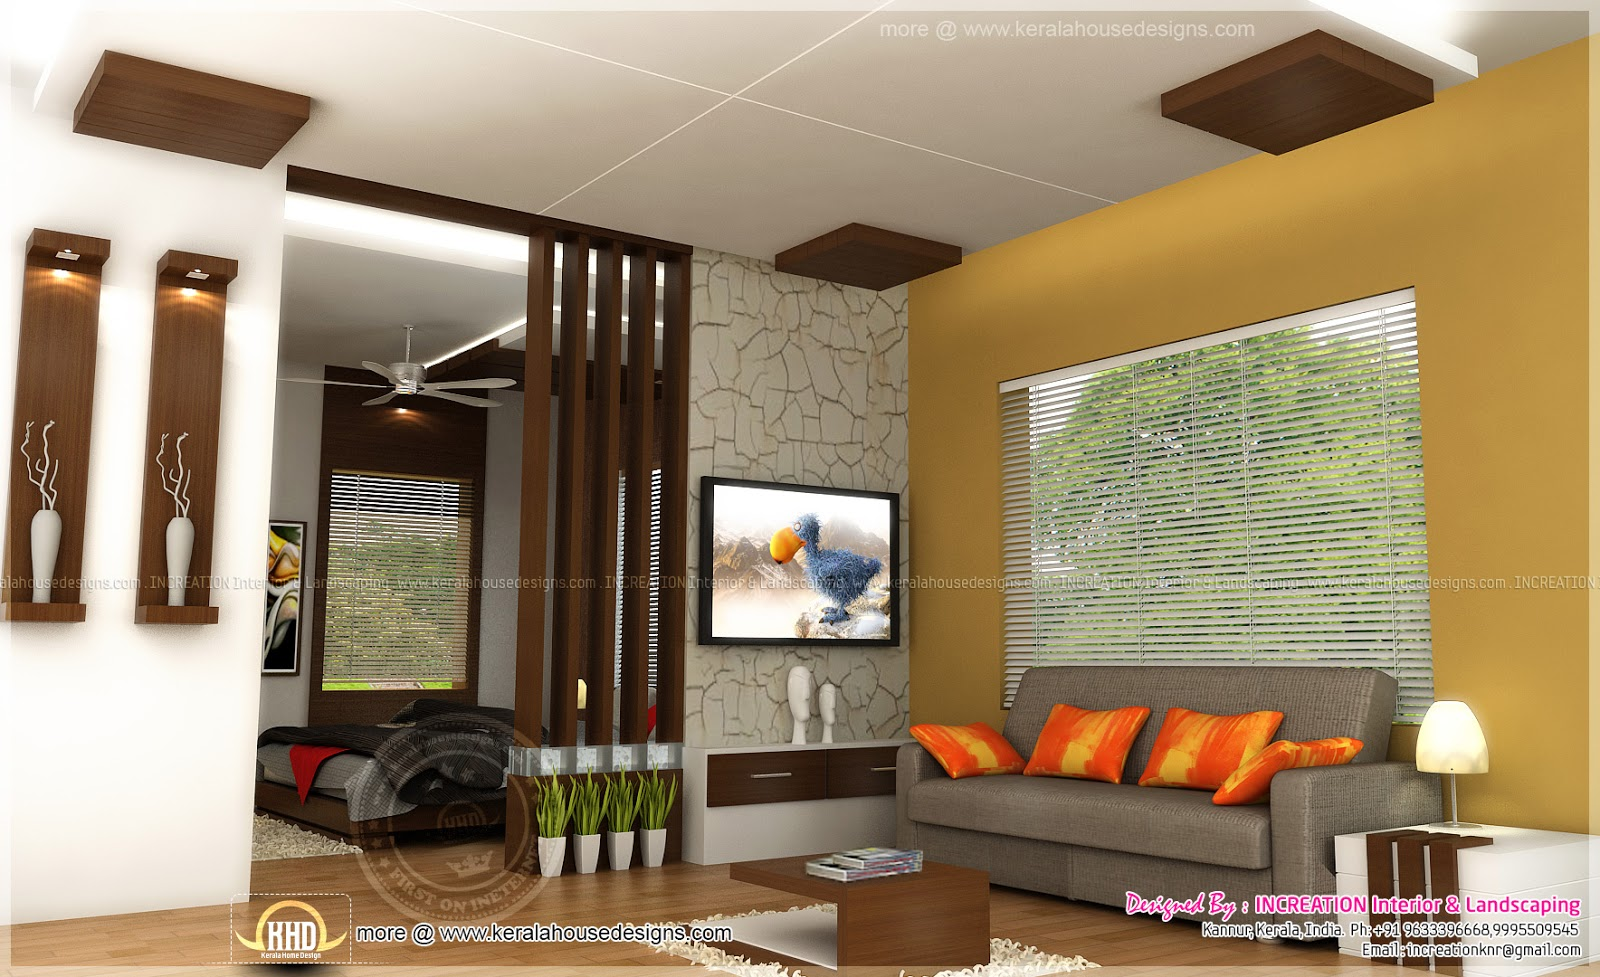 Interior designs from kannur kerala kerala home design for House plans interior photos